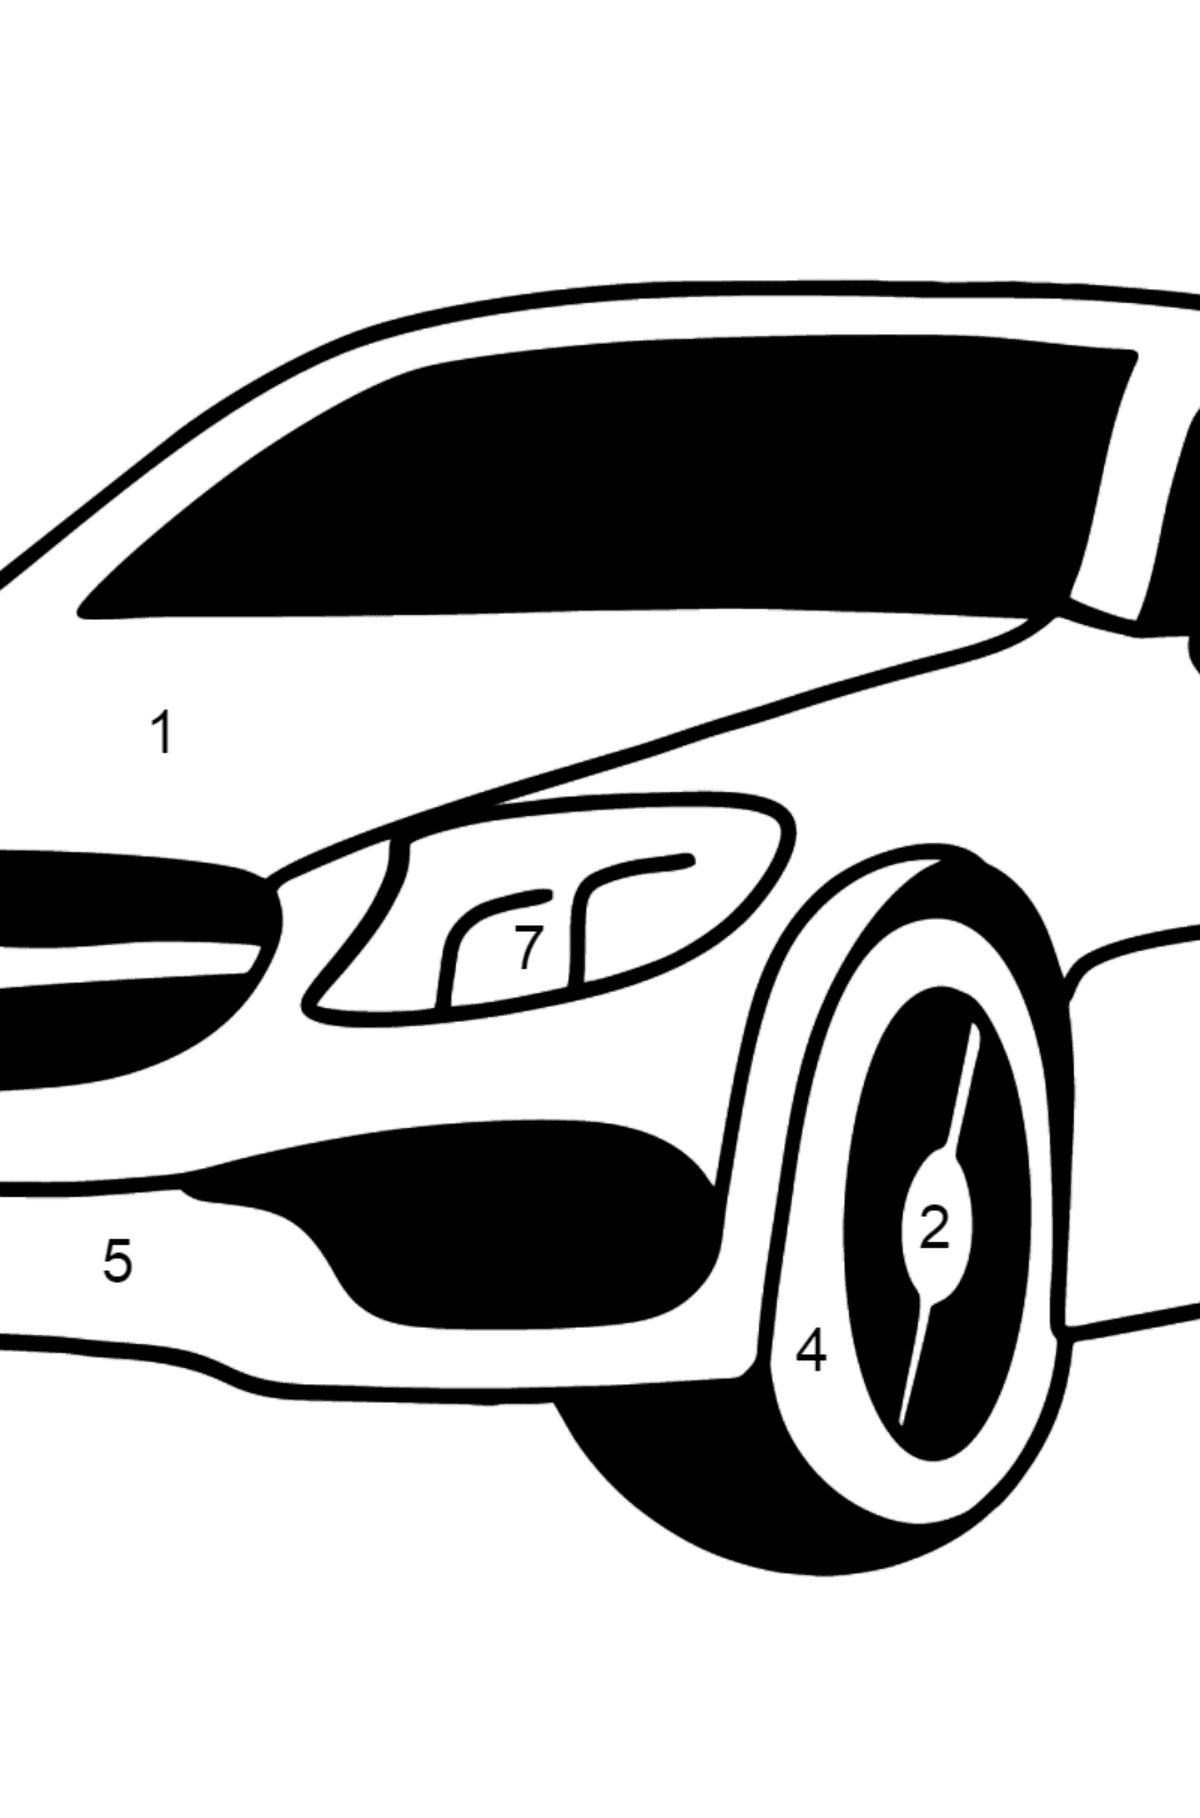 Mercedes C63 AMG car coloring page - Coloring by Numbers for Kids